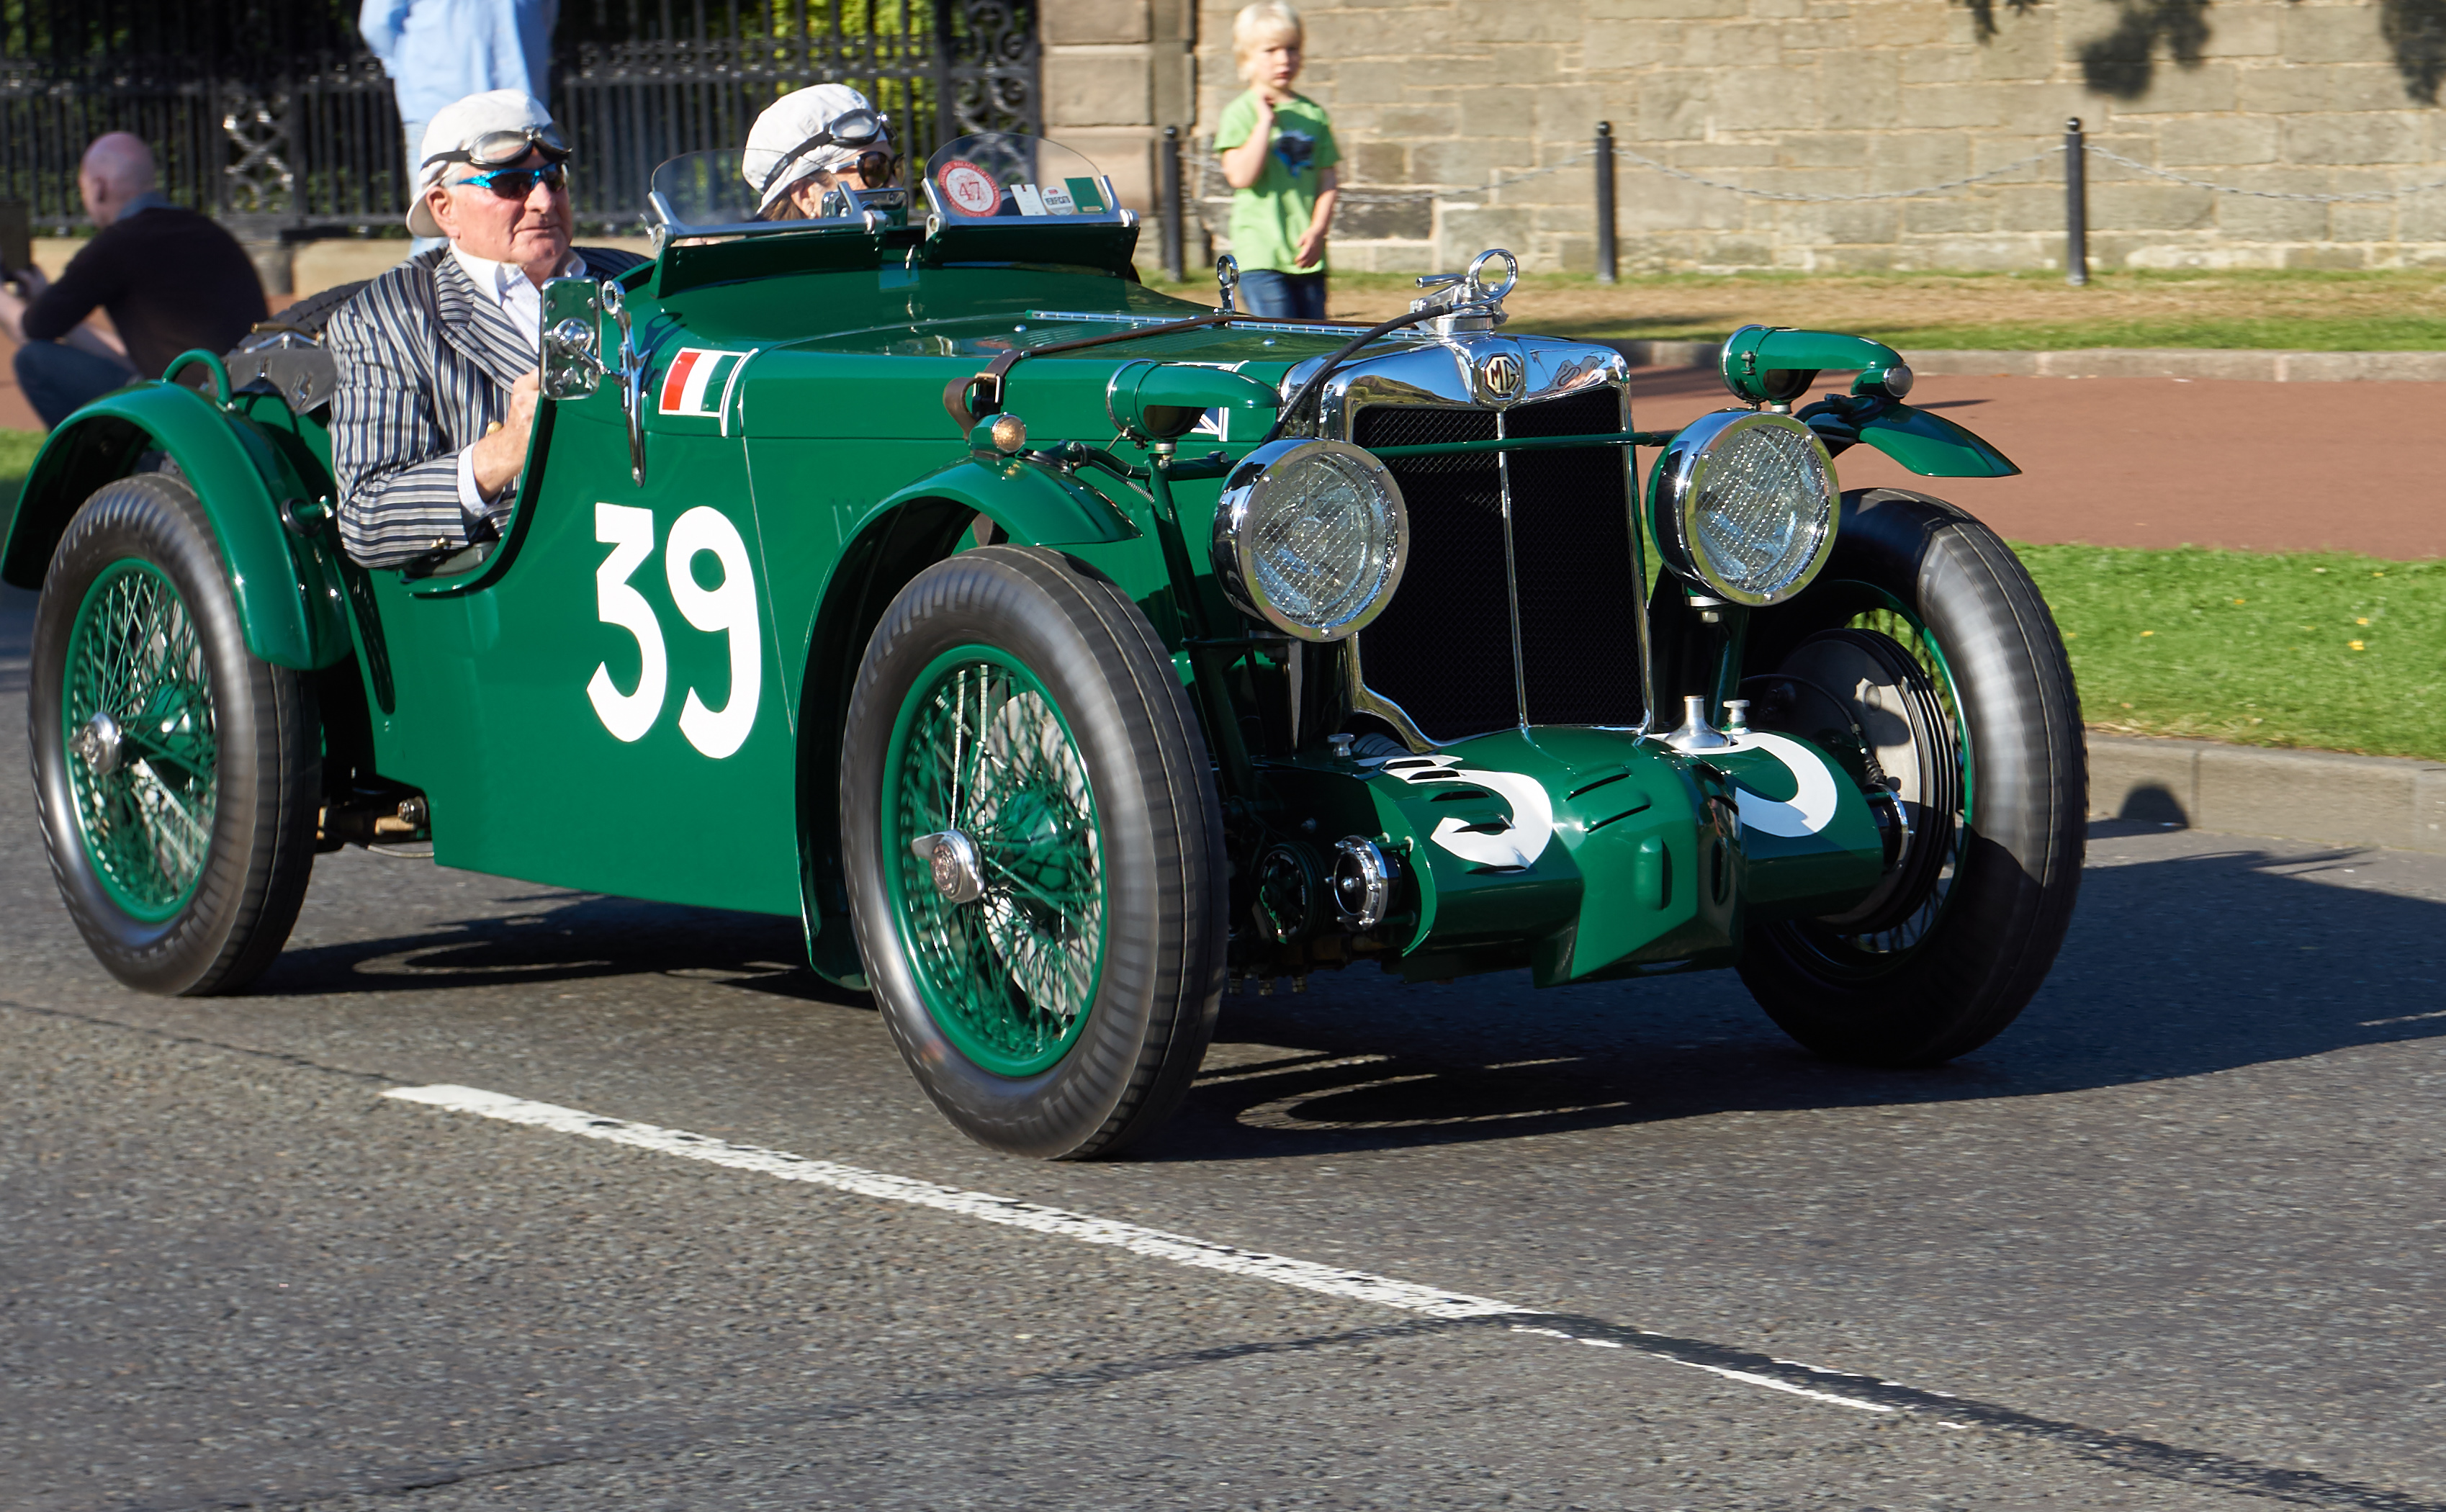 1933 mg k3 magnette supercharged roadster photo